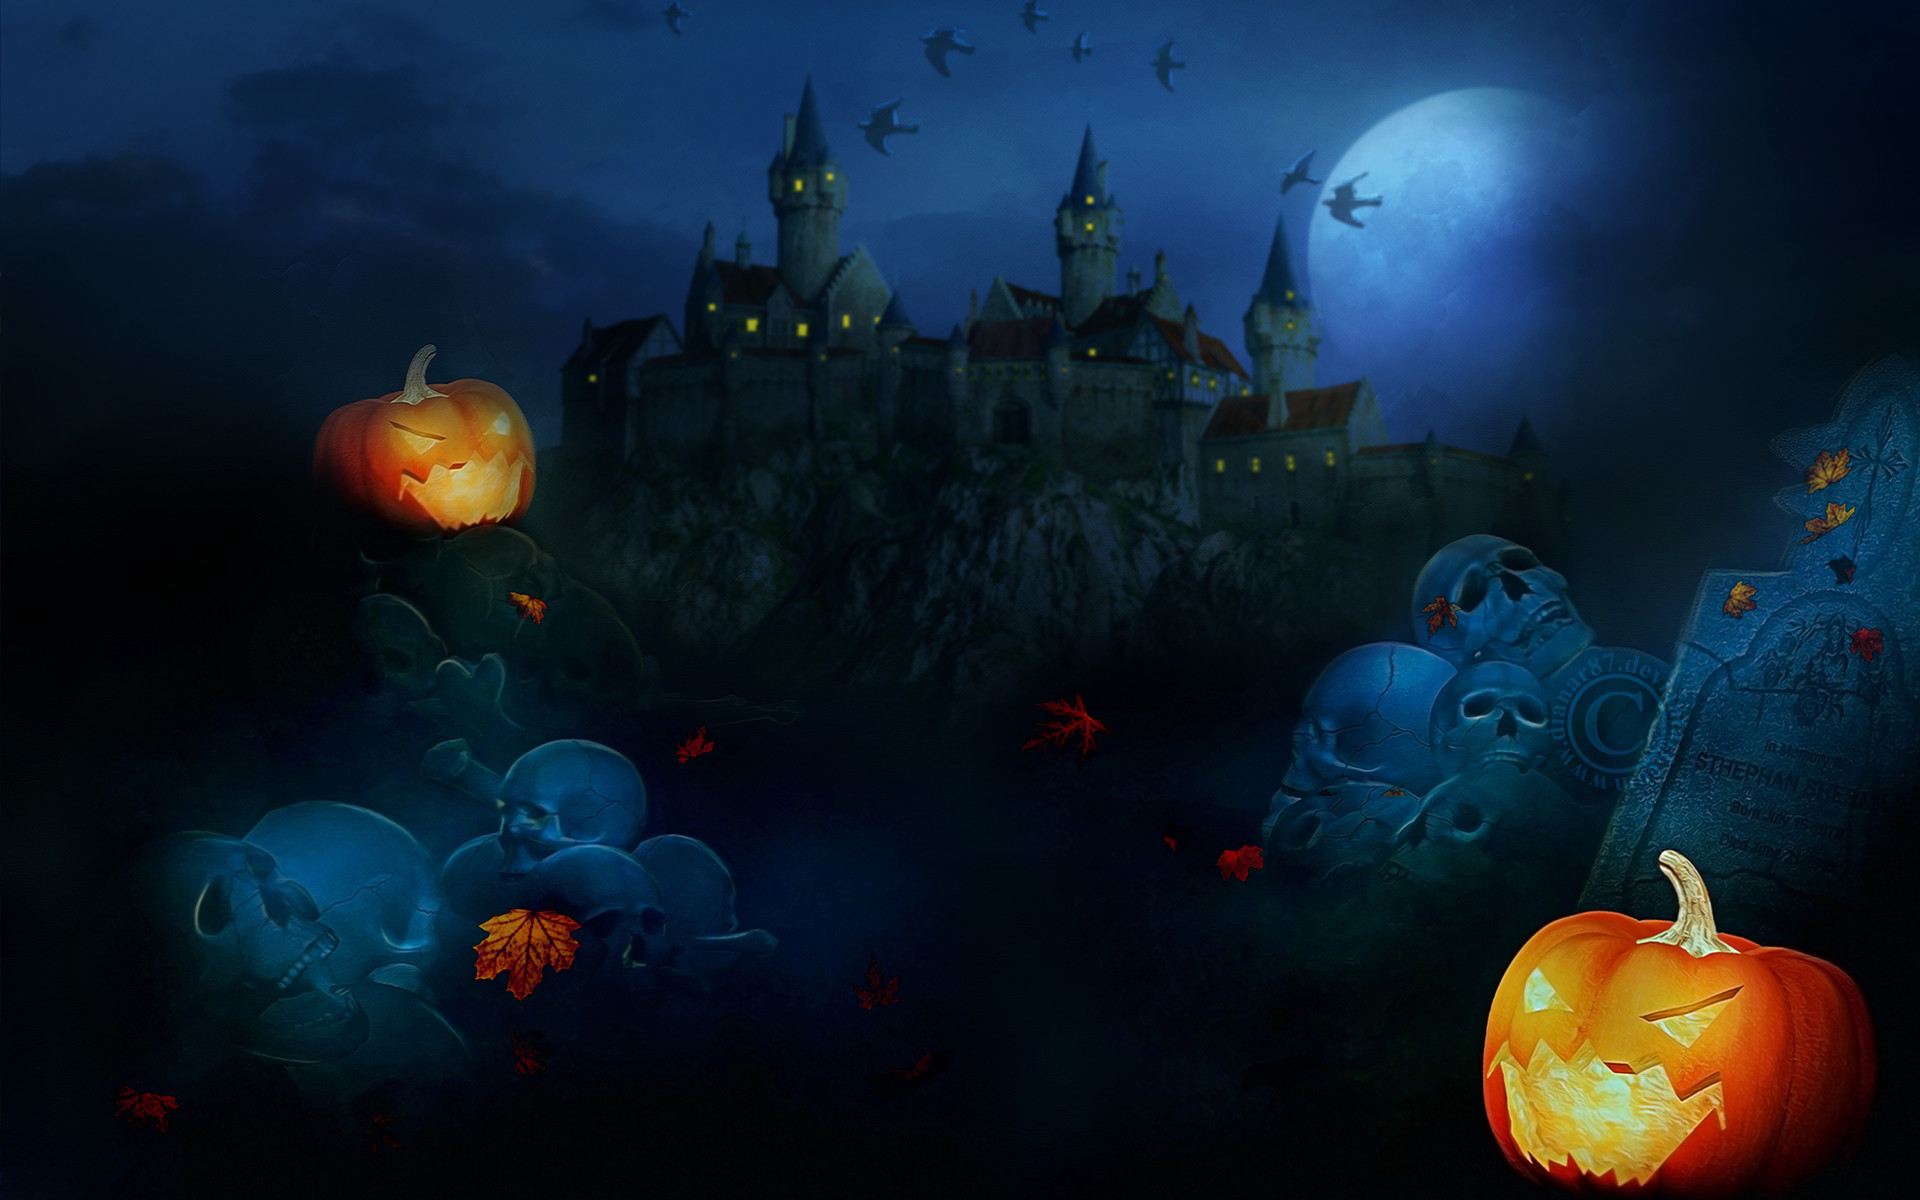 scary halloween wallpapers and screensavers  58  images